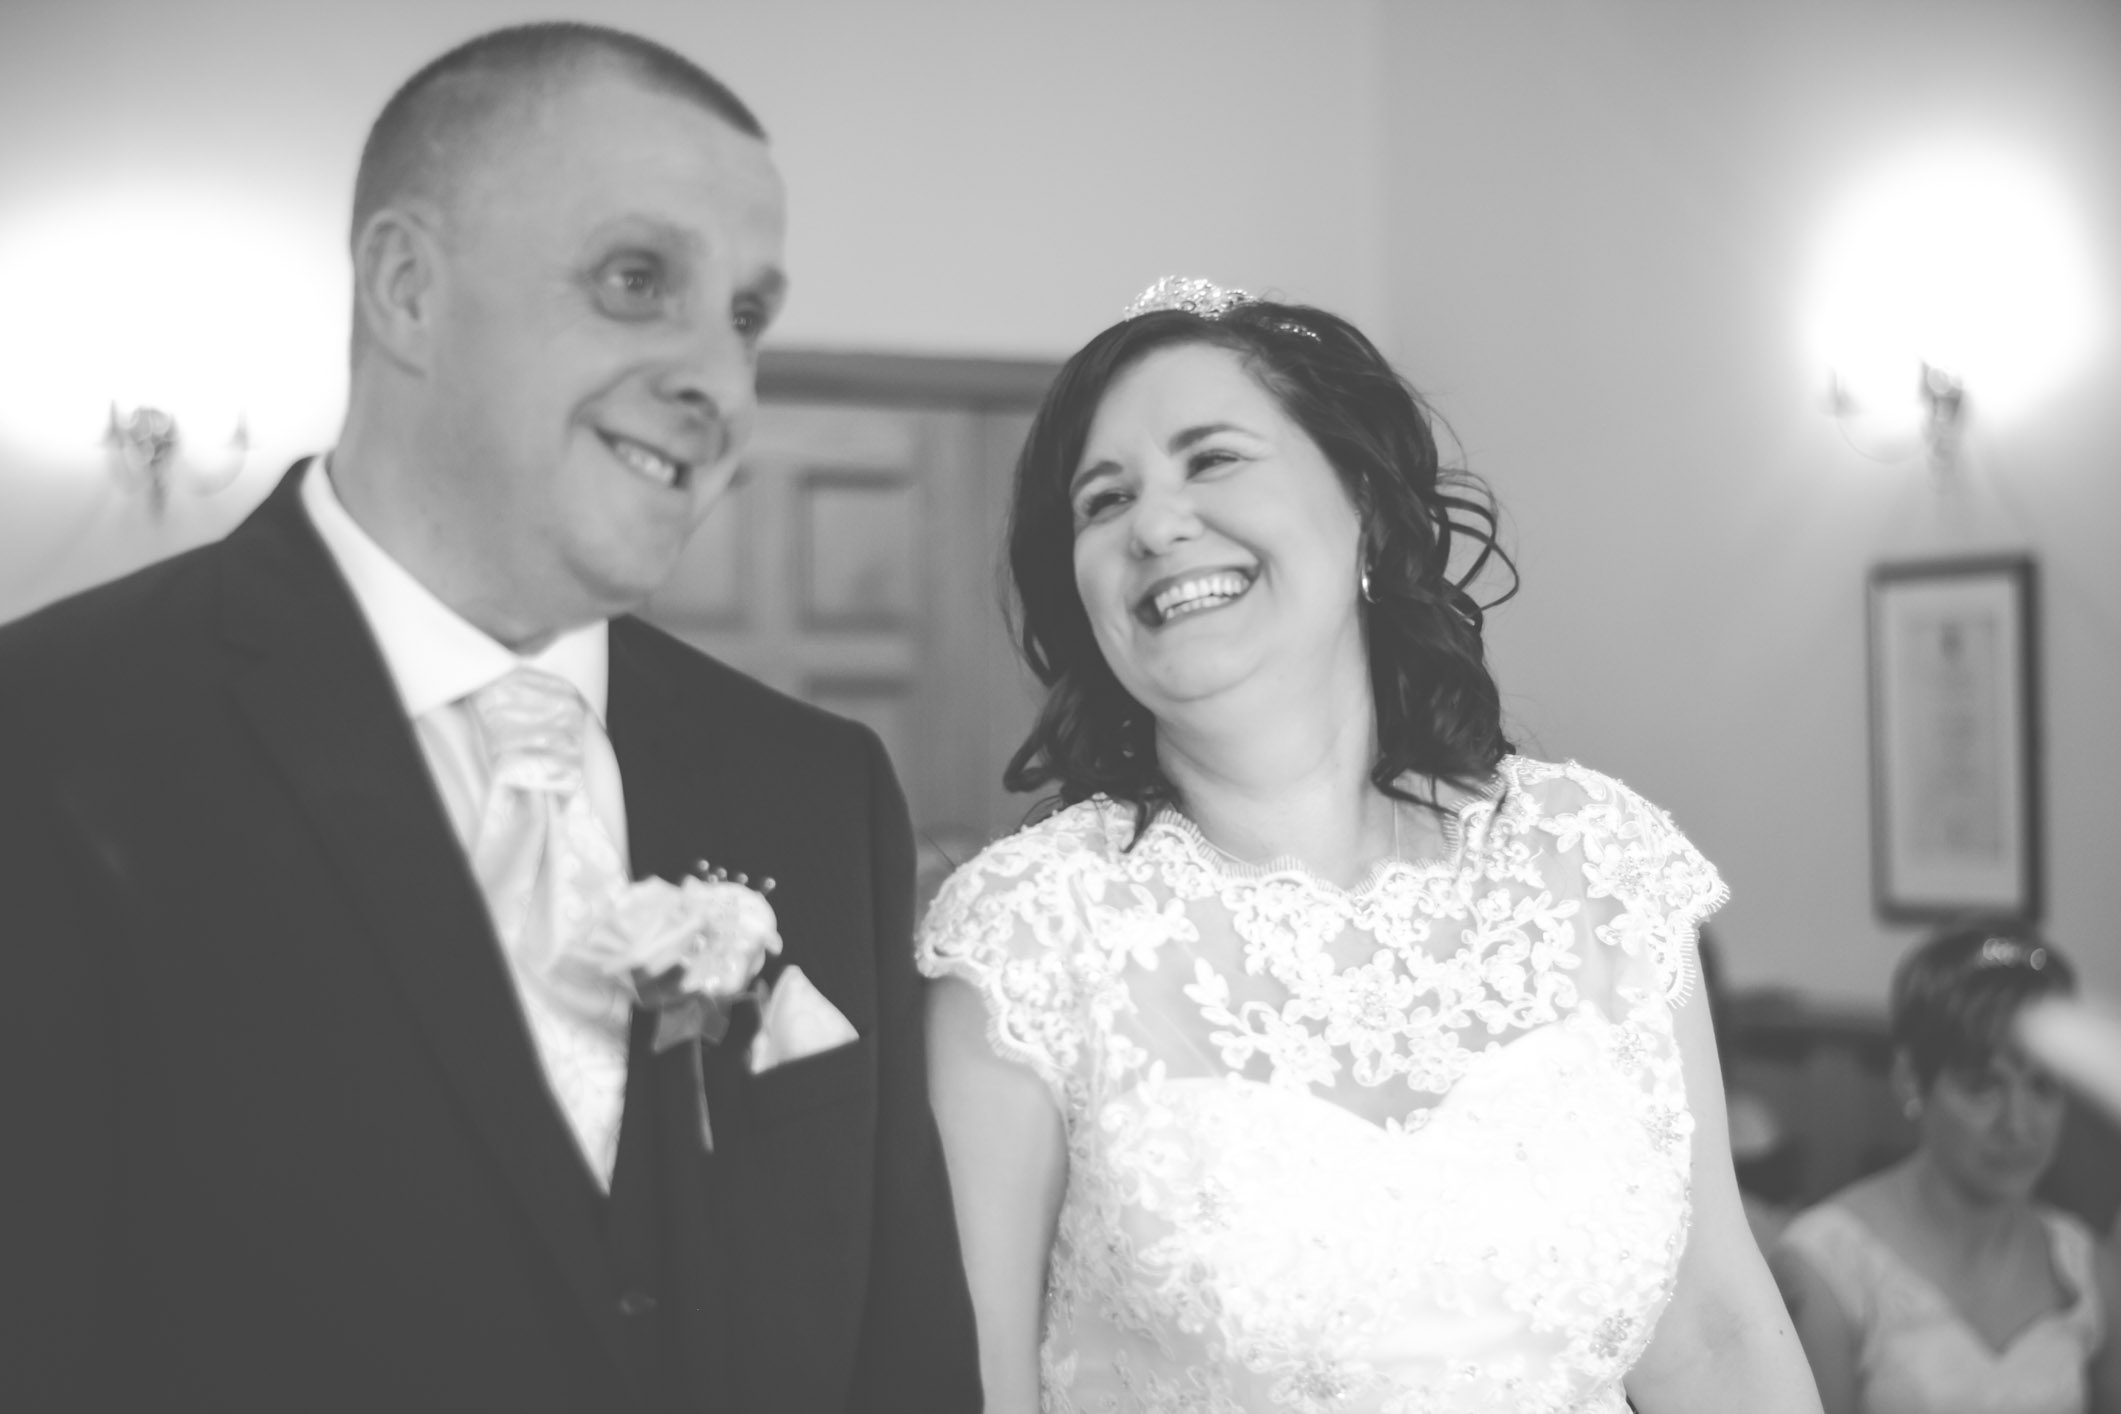 bradford-wedding-photographer-bradford-registry-office-06